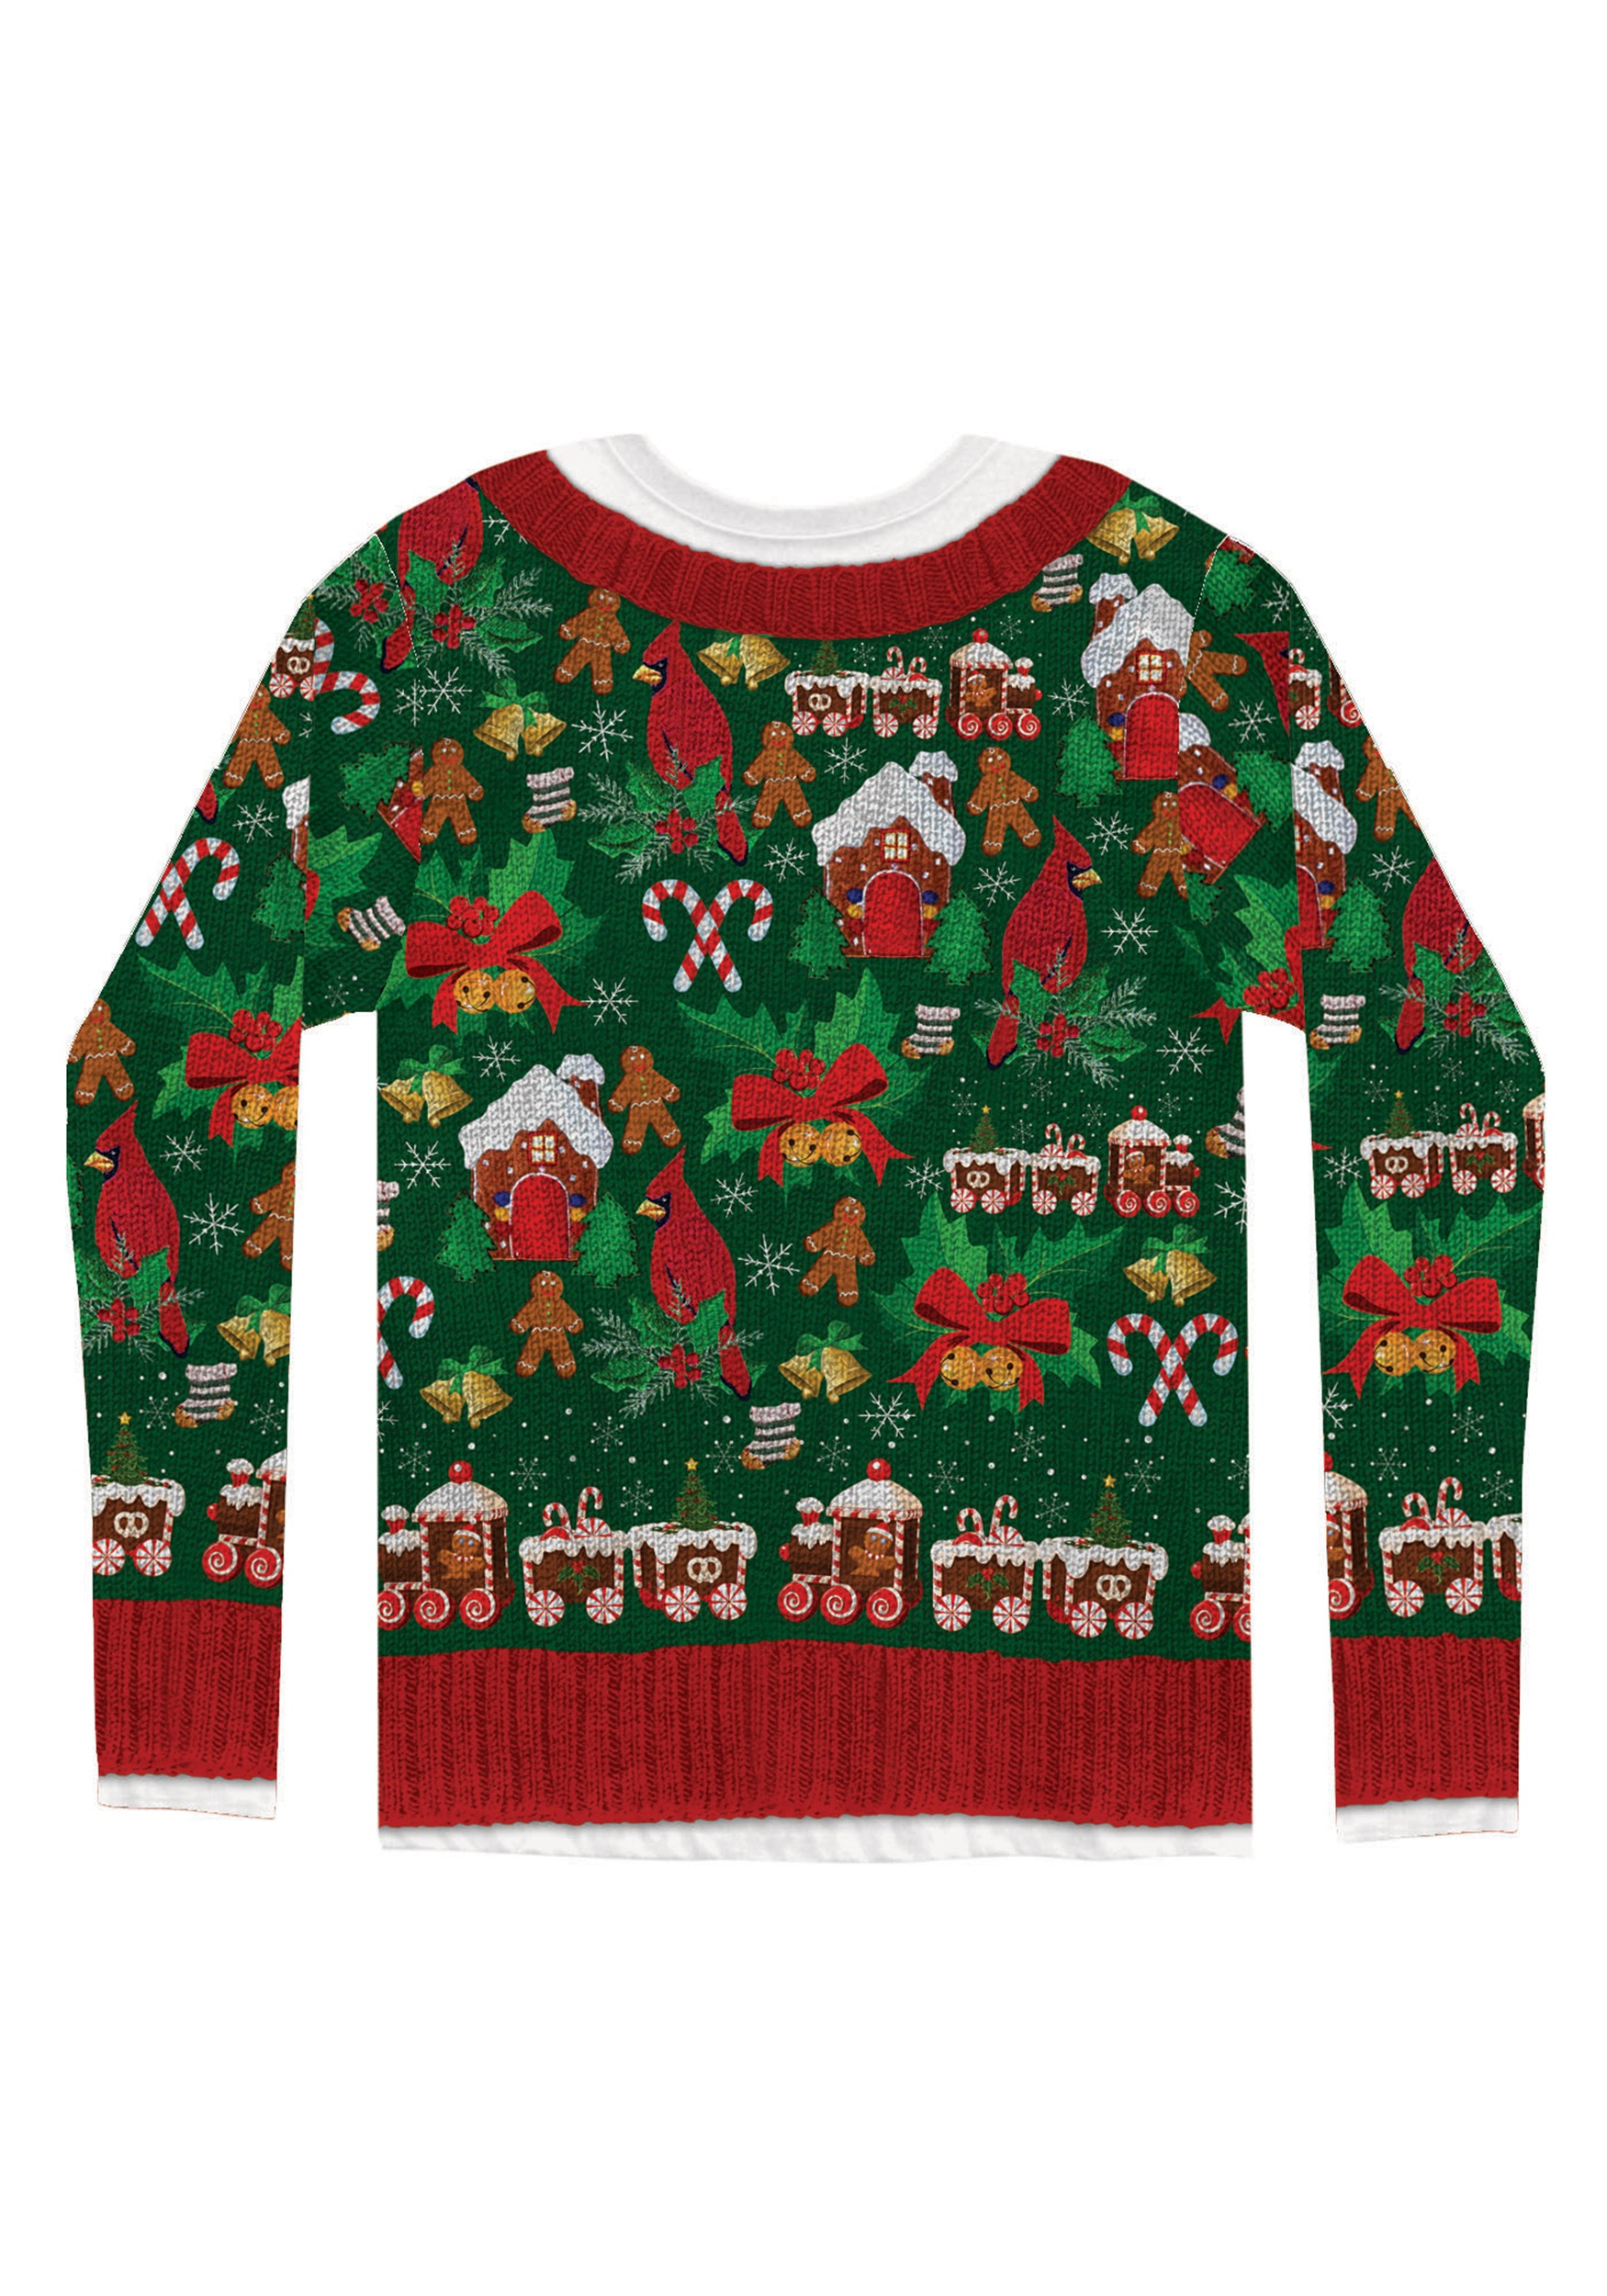 Plus Size Ugly Christmas Sweaters Sale